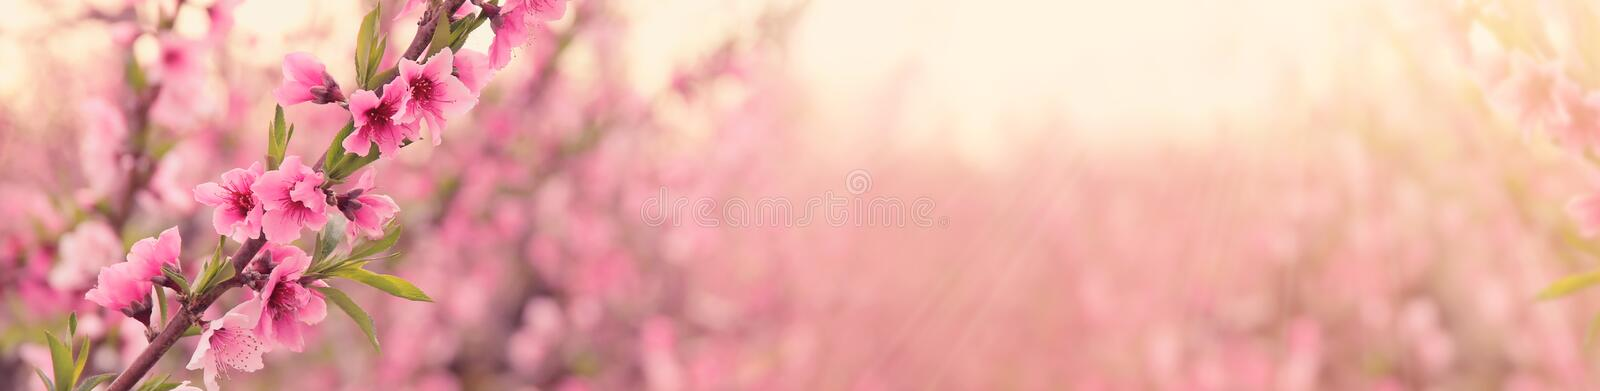 abstract and dreamy banner background of of spring blossoms tree with pink flowers. selective focus. royalty free stock photography